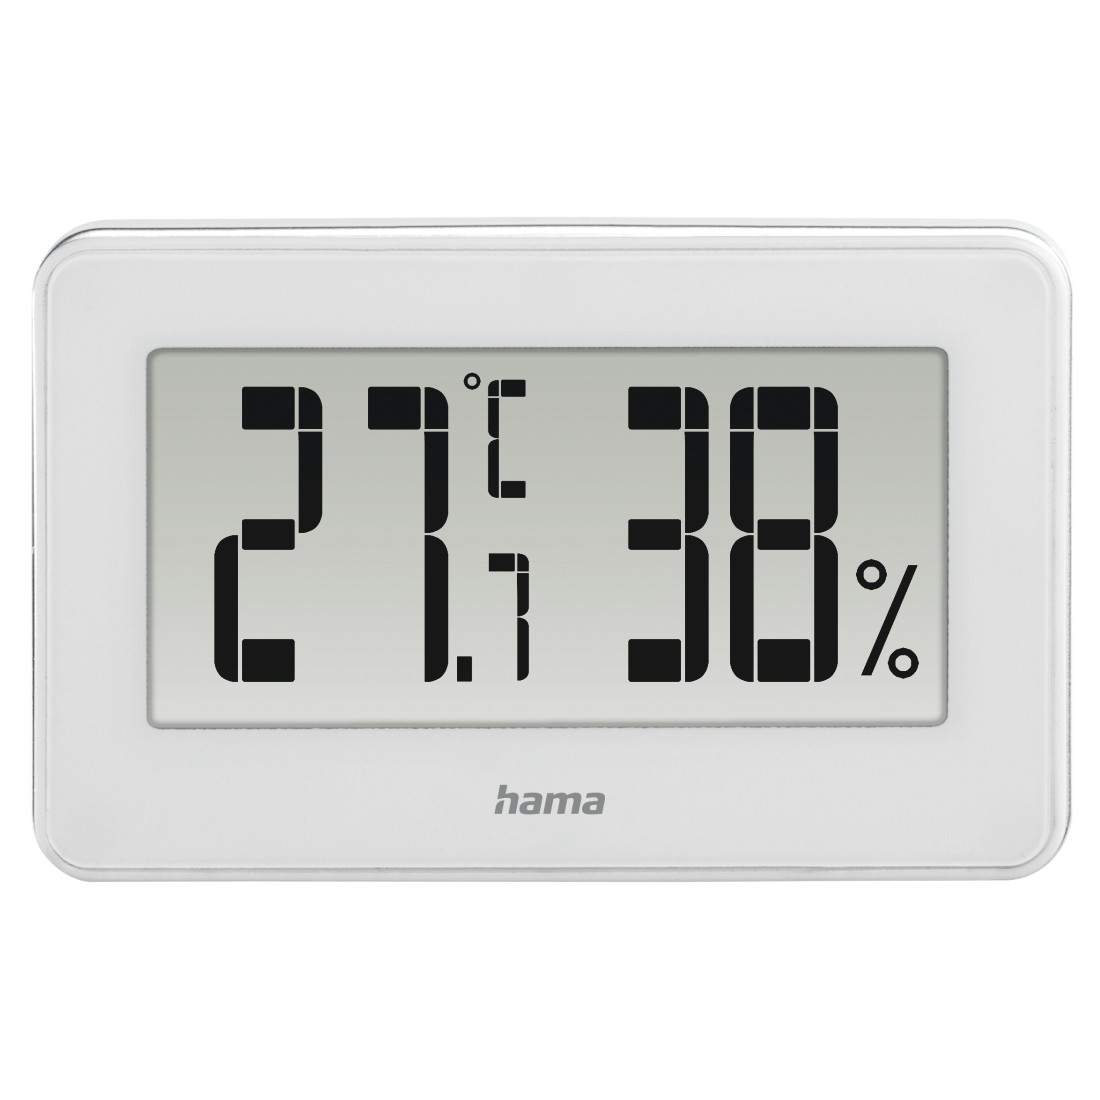 "abx3 High-Res Image 3 - Hama, ""Mini"" Thermo / Hygrometer, white"